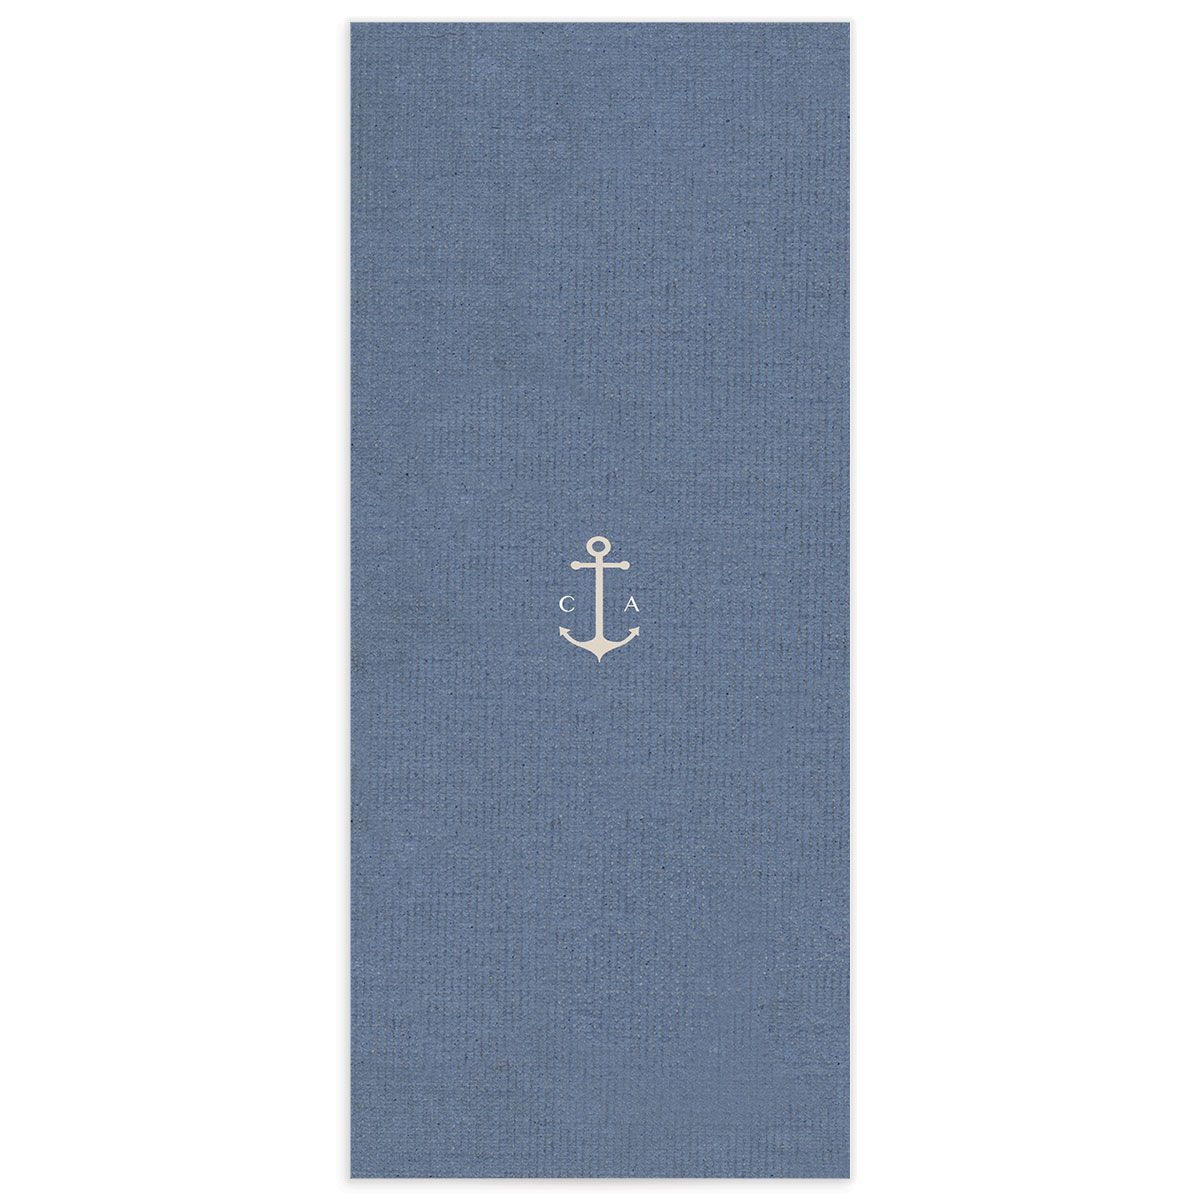 Coastal Love menus back in blue